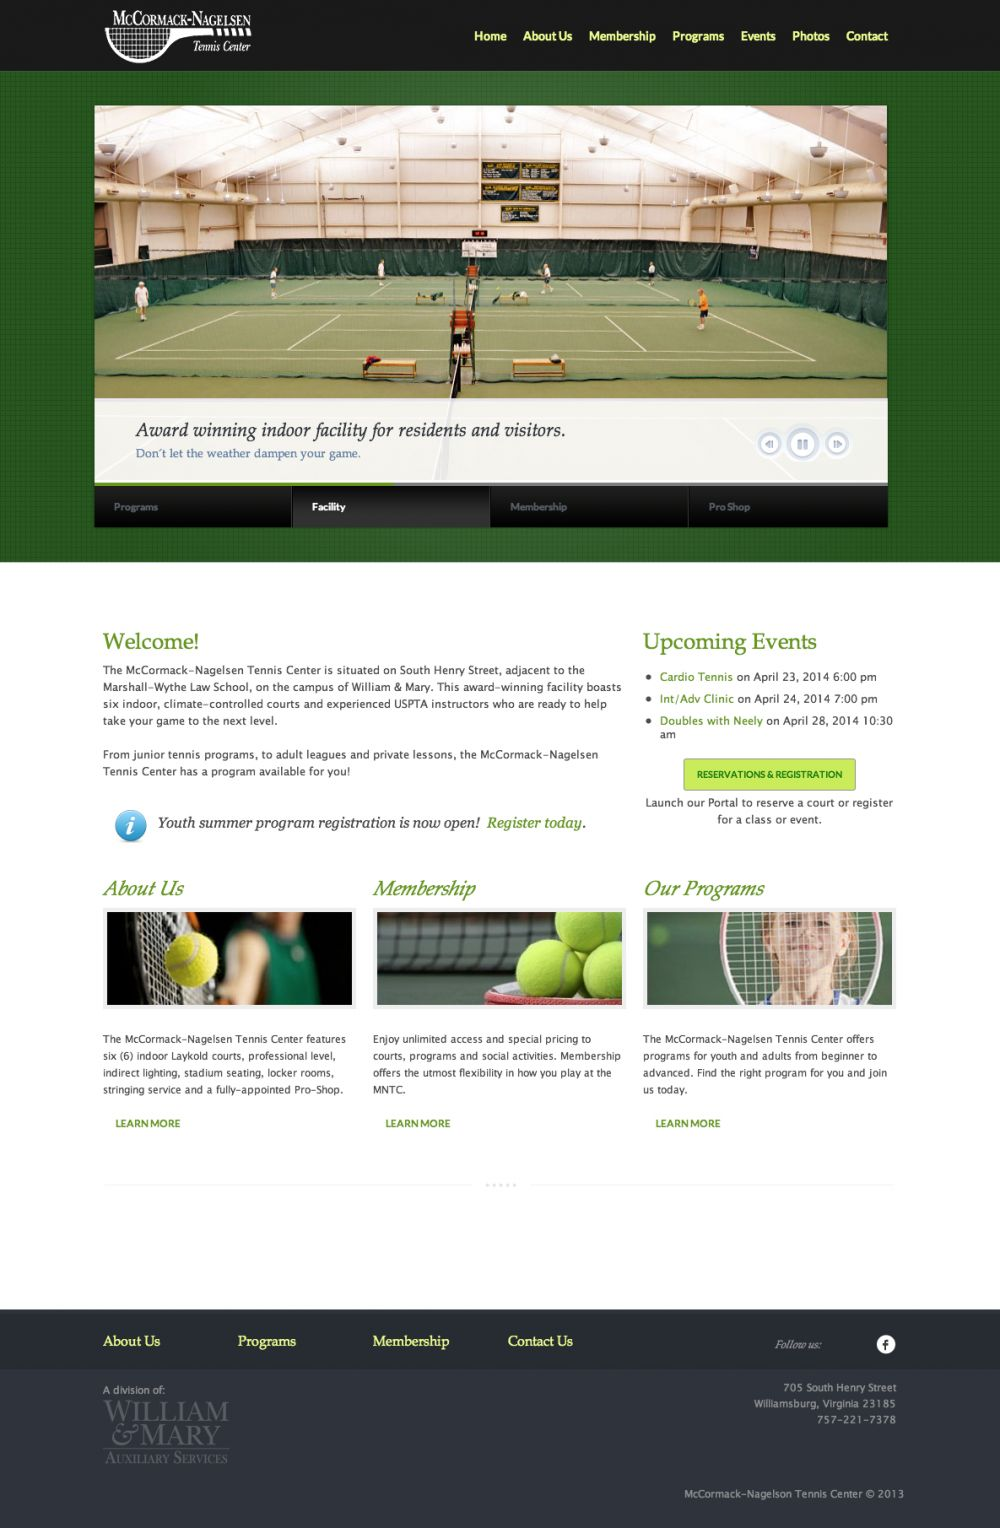 McCormack-Nagelsen Tennis Center